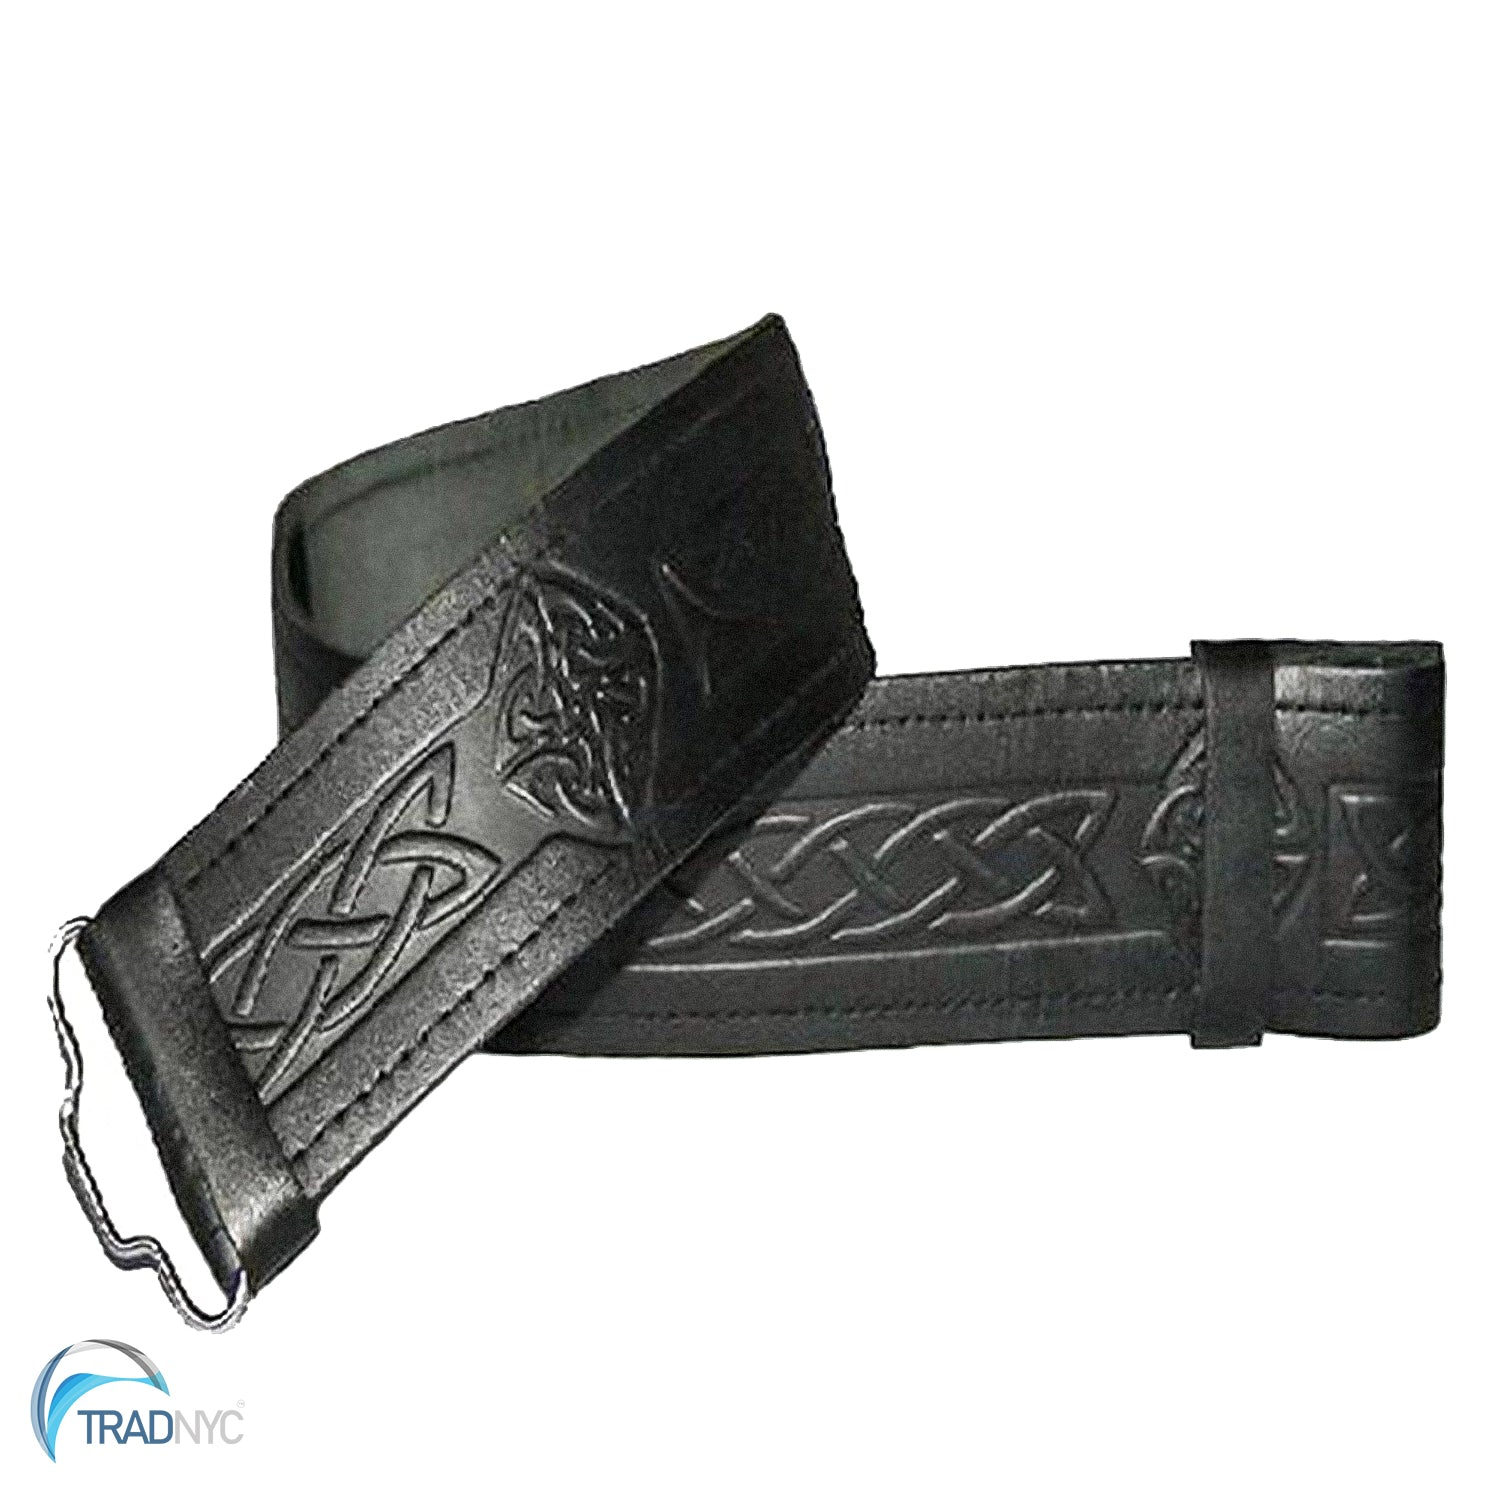 Leather Belt Pouch Black Embossed Celtic Knot Small Attaches to Trouser Belt Kilts Scottish Made